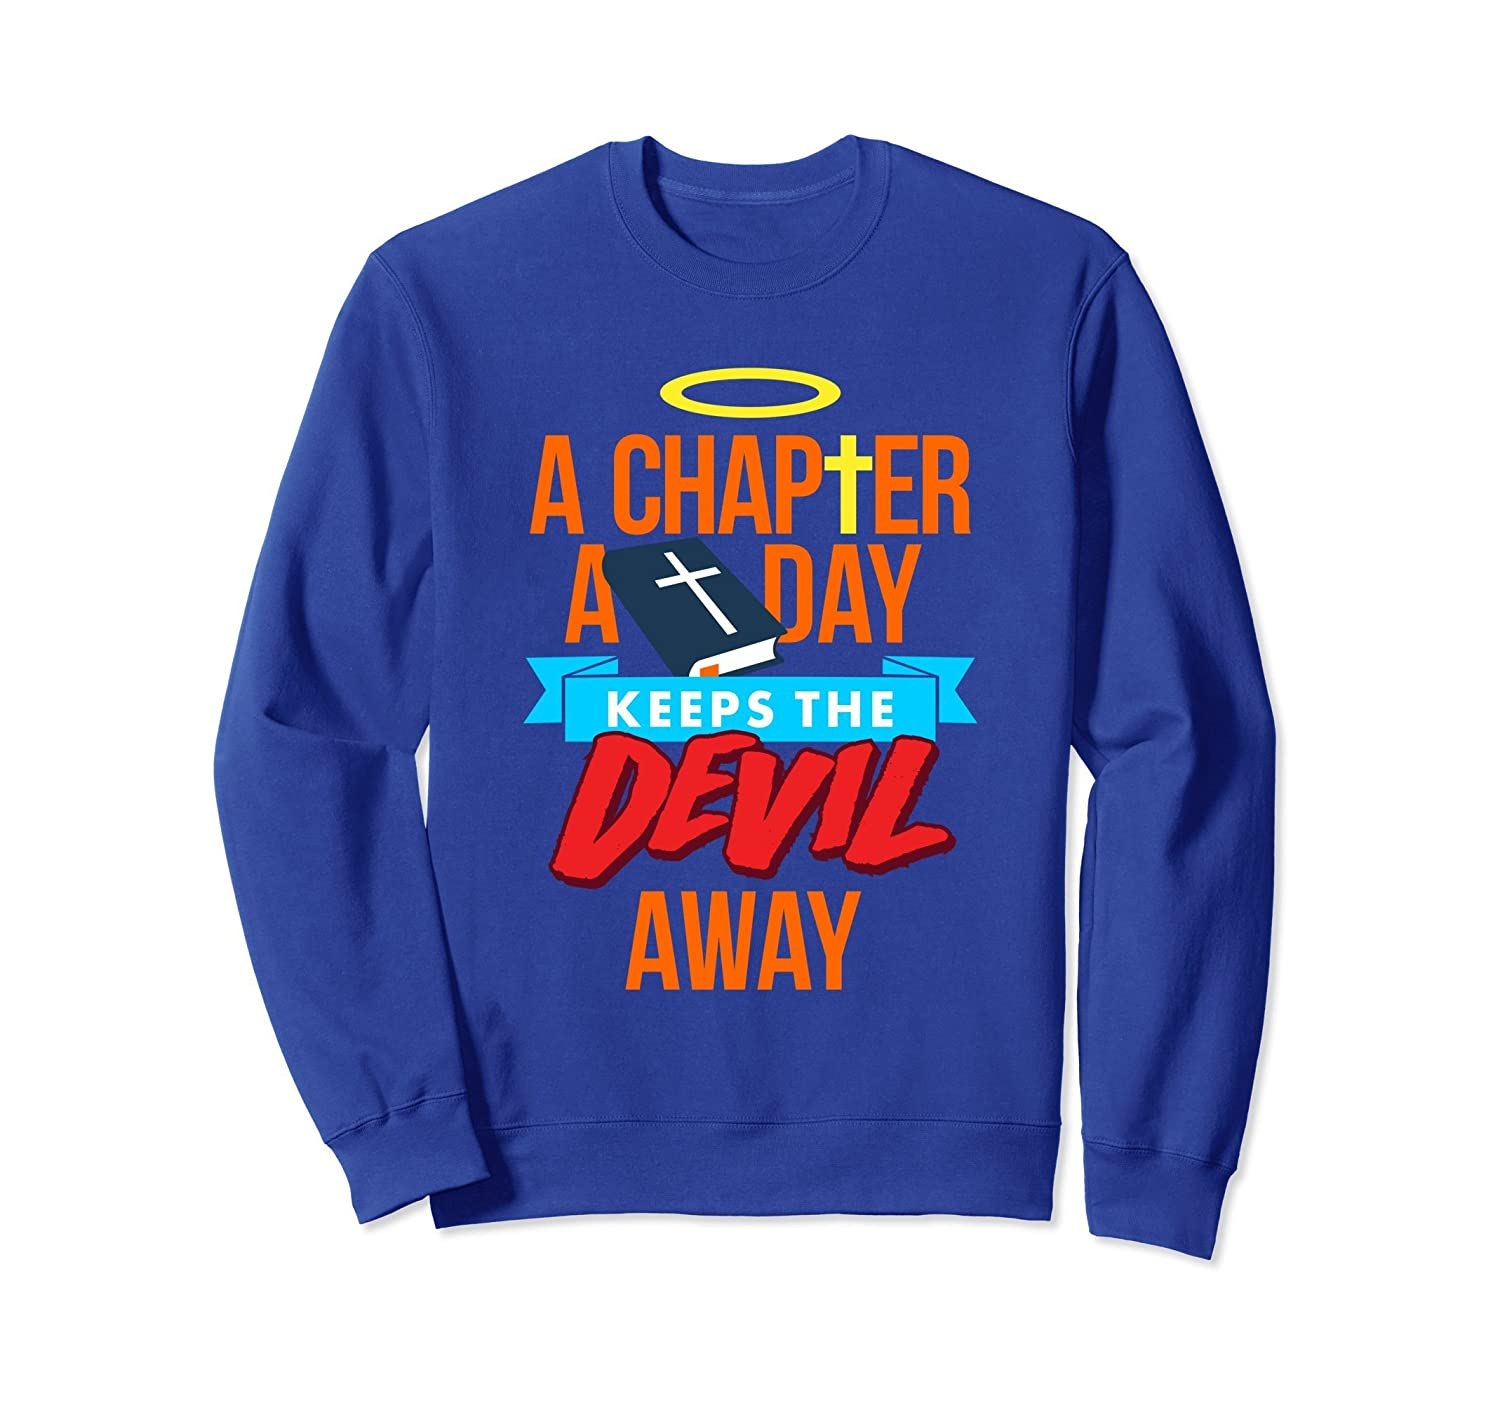 A Chapter A Day Keeps The Devil Away Christian Sweatshirt-mt